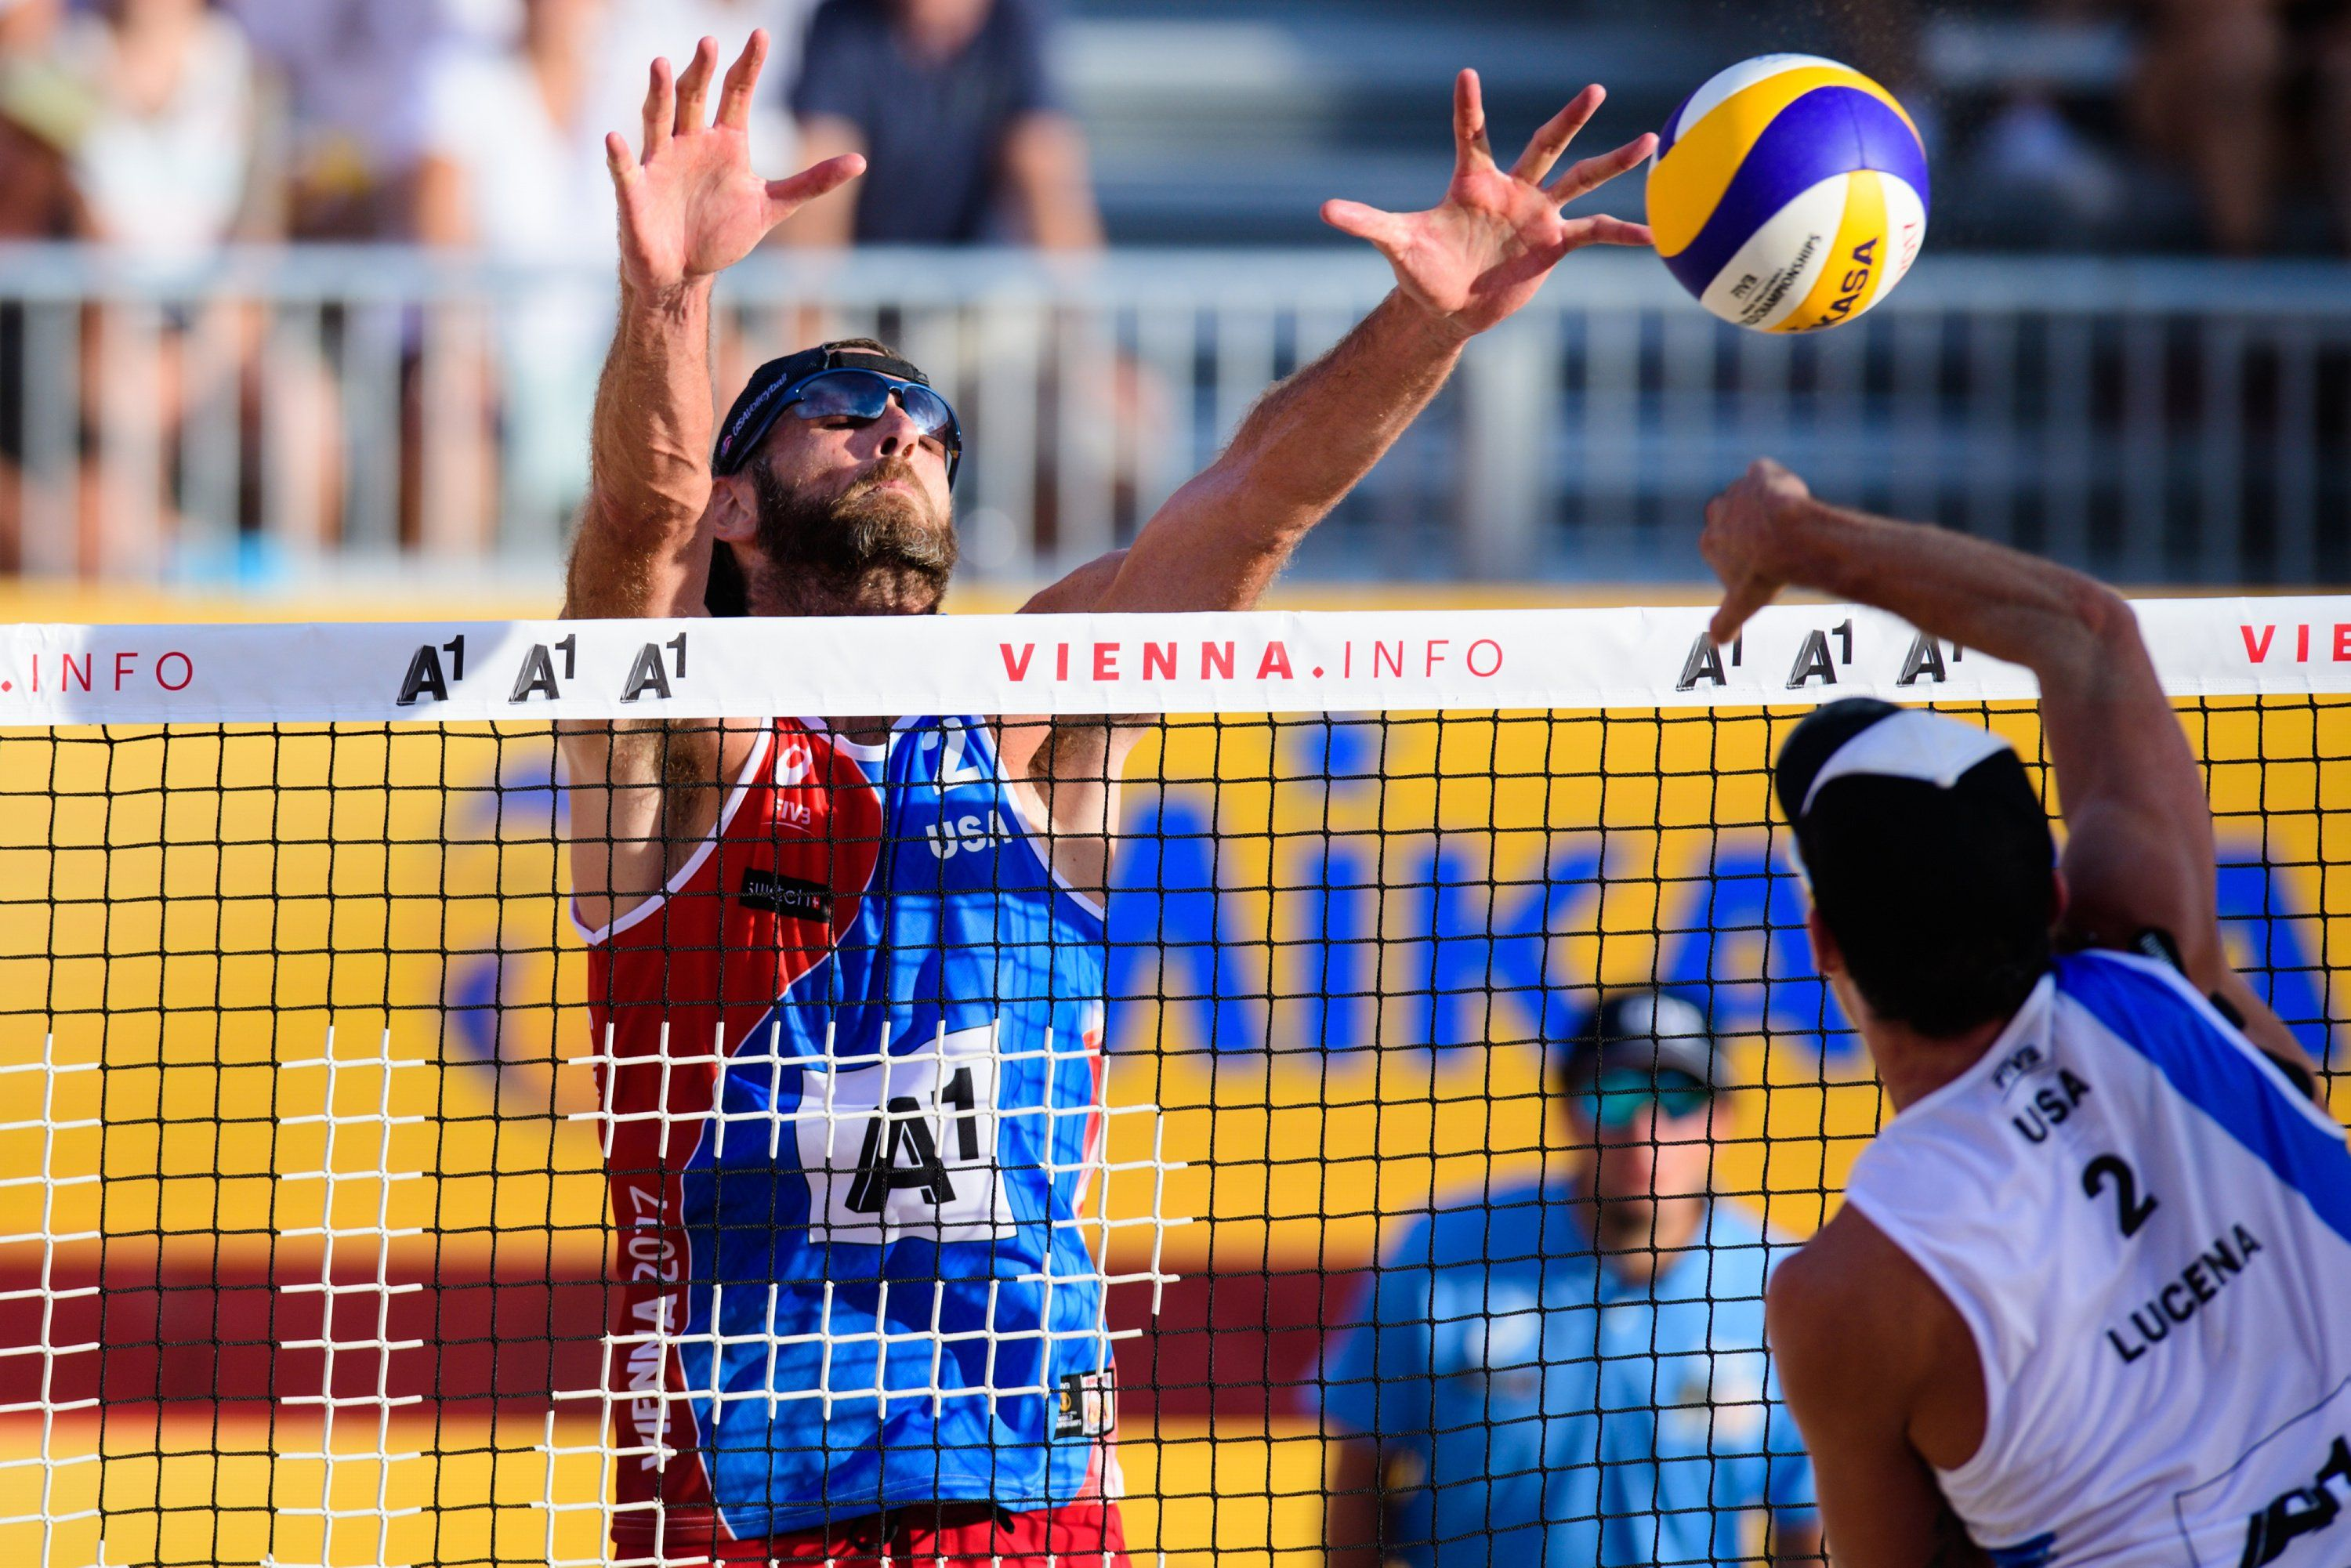 John Hyden Stays Positive After Opening Lost At Beach World Champs Volleyball Articles Beach Fivb Beach Volleyball